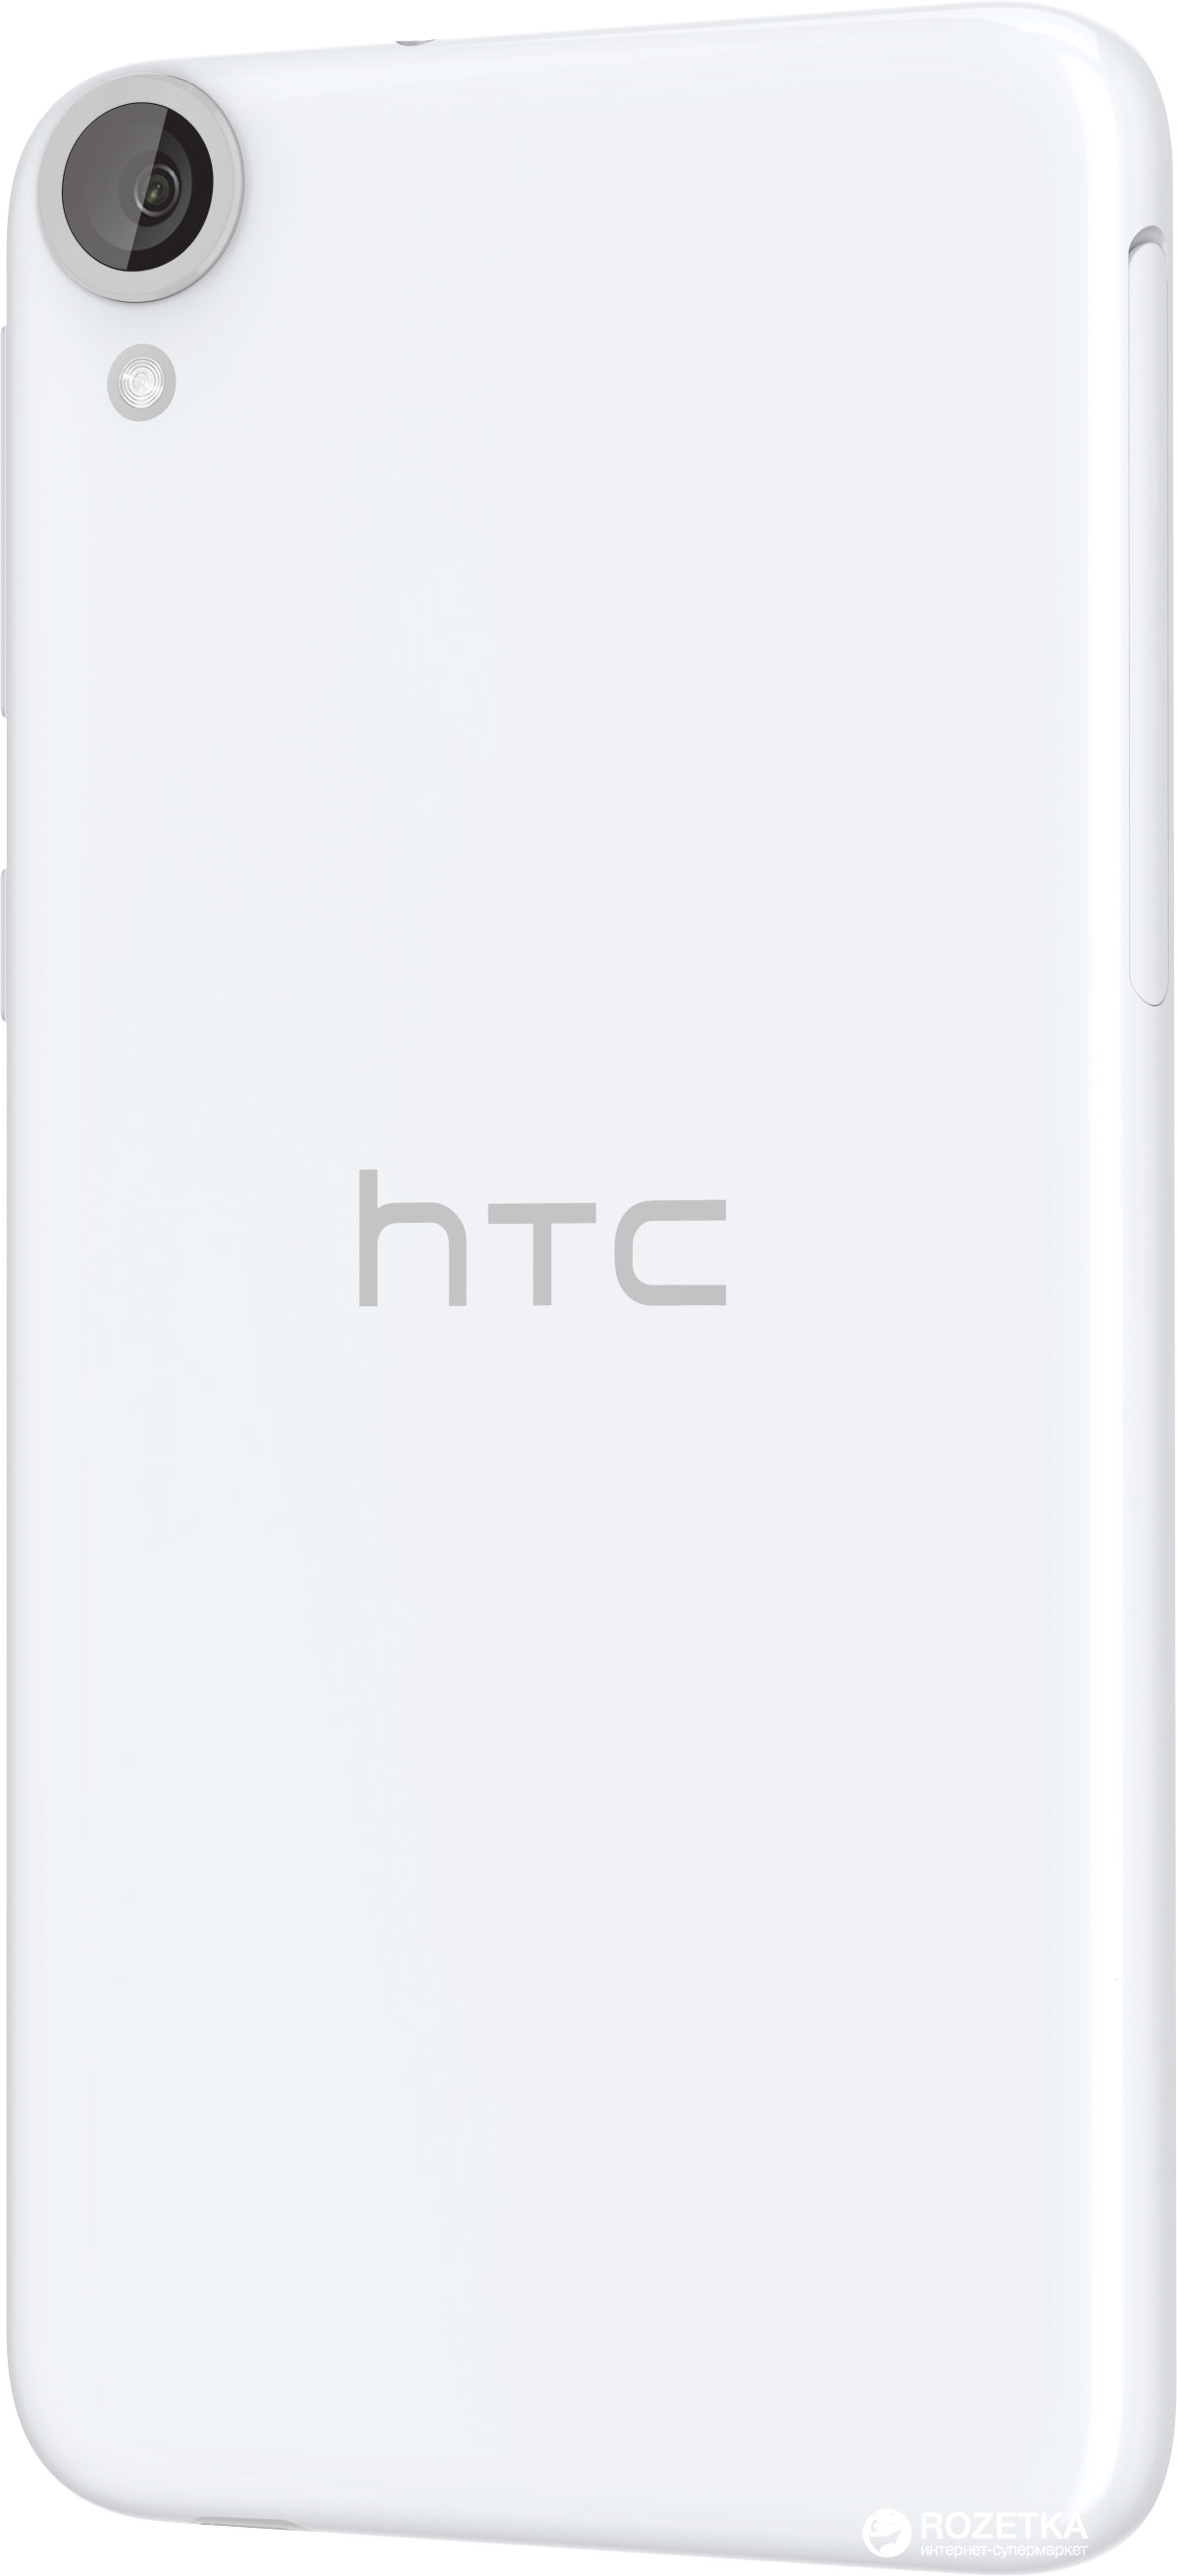 3g Htc Desire 626 | Wiring Diagram Database